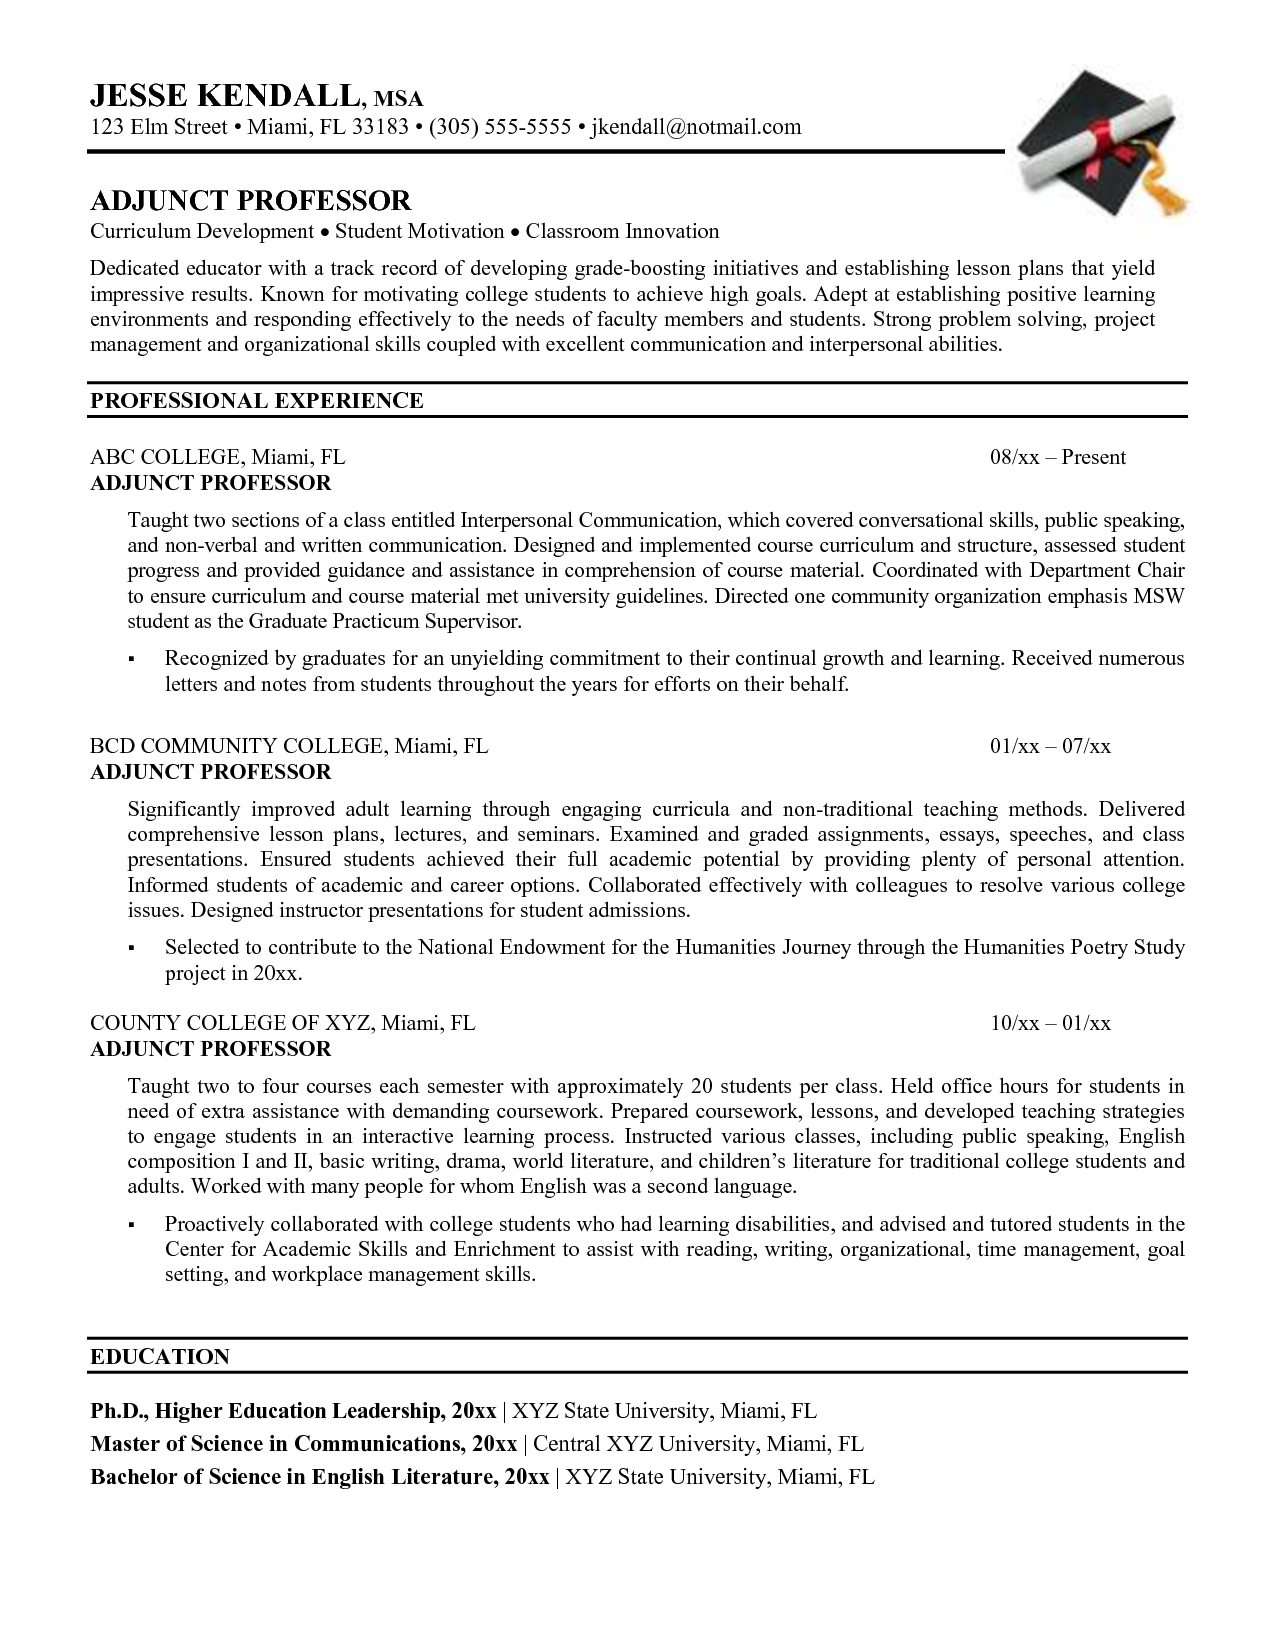 sample resume for faculty position engineering adjunct professor resume